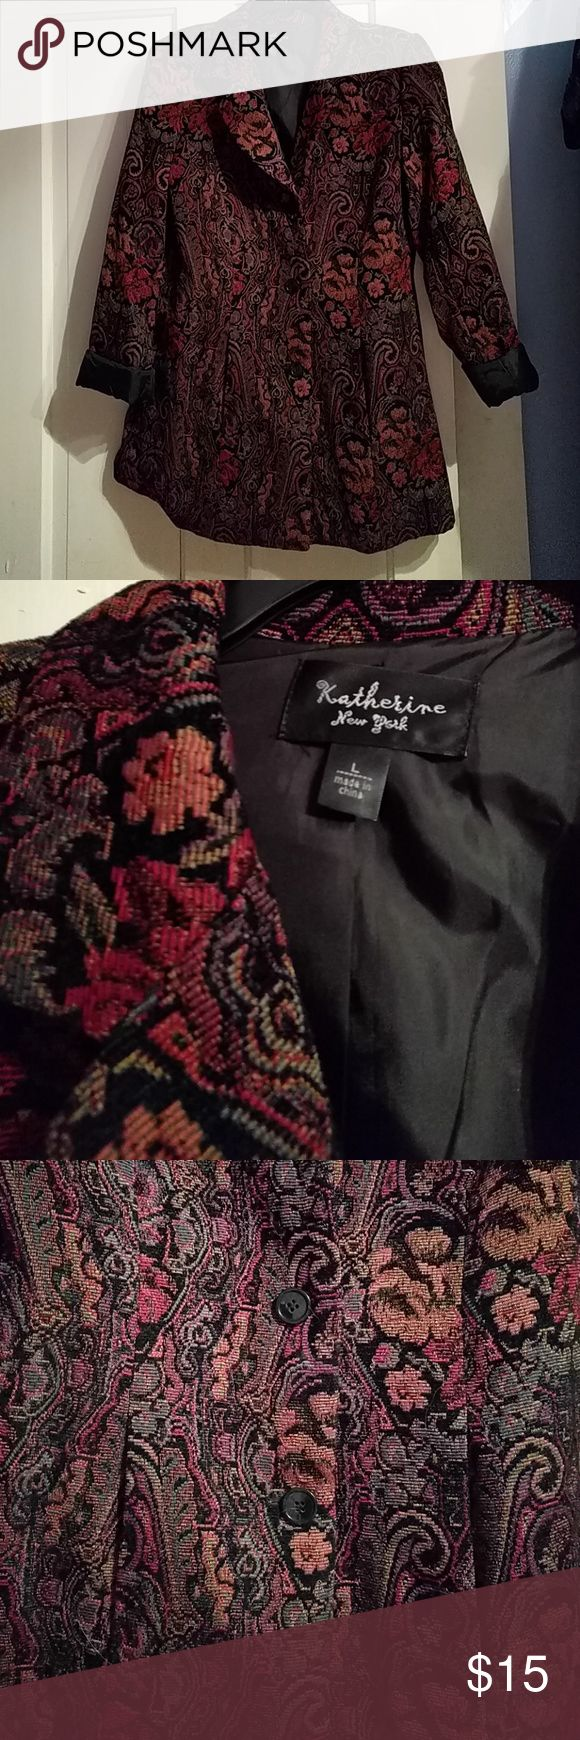 Tapestry print blazer style peacoat Tapestry print with muted browns, orange, red on a black background. Three buttons down front and two pockets. Almost like a heavy, long blazer, but I would say really am outdoor fall coat. Wore 2-3 times, still like new. Dry clean only. Jackets & Coats Pea Coats